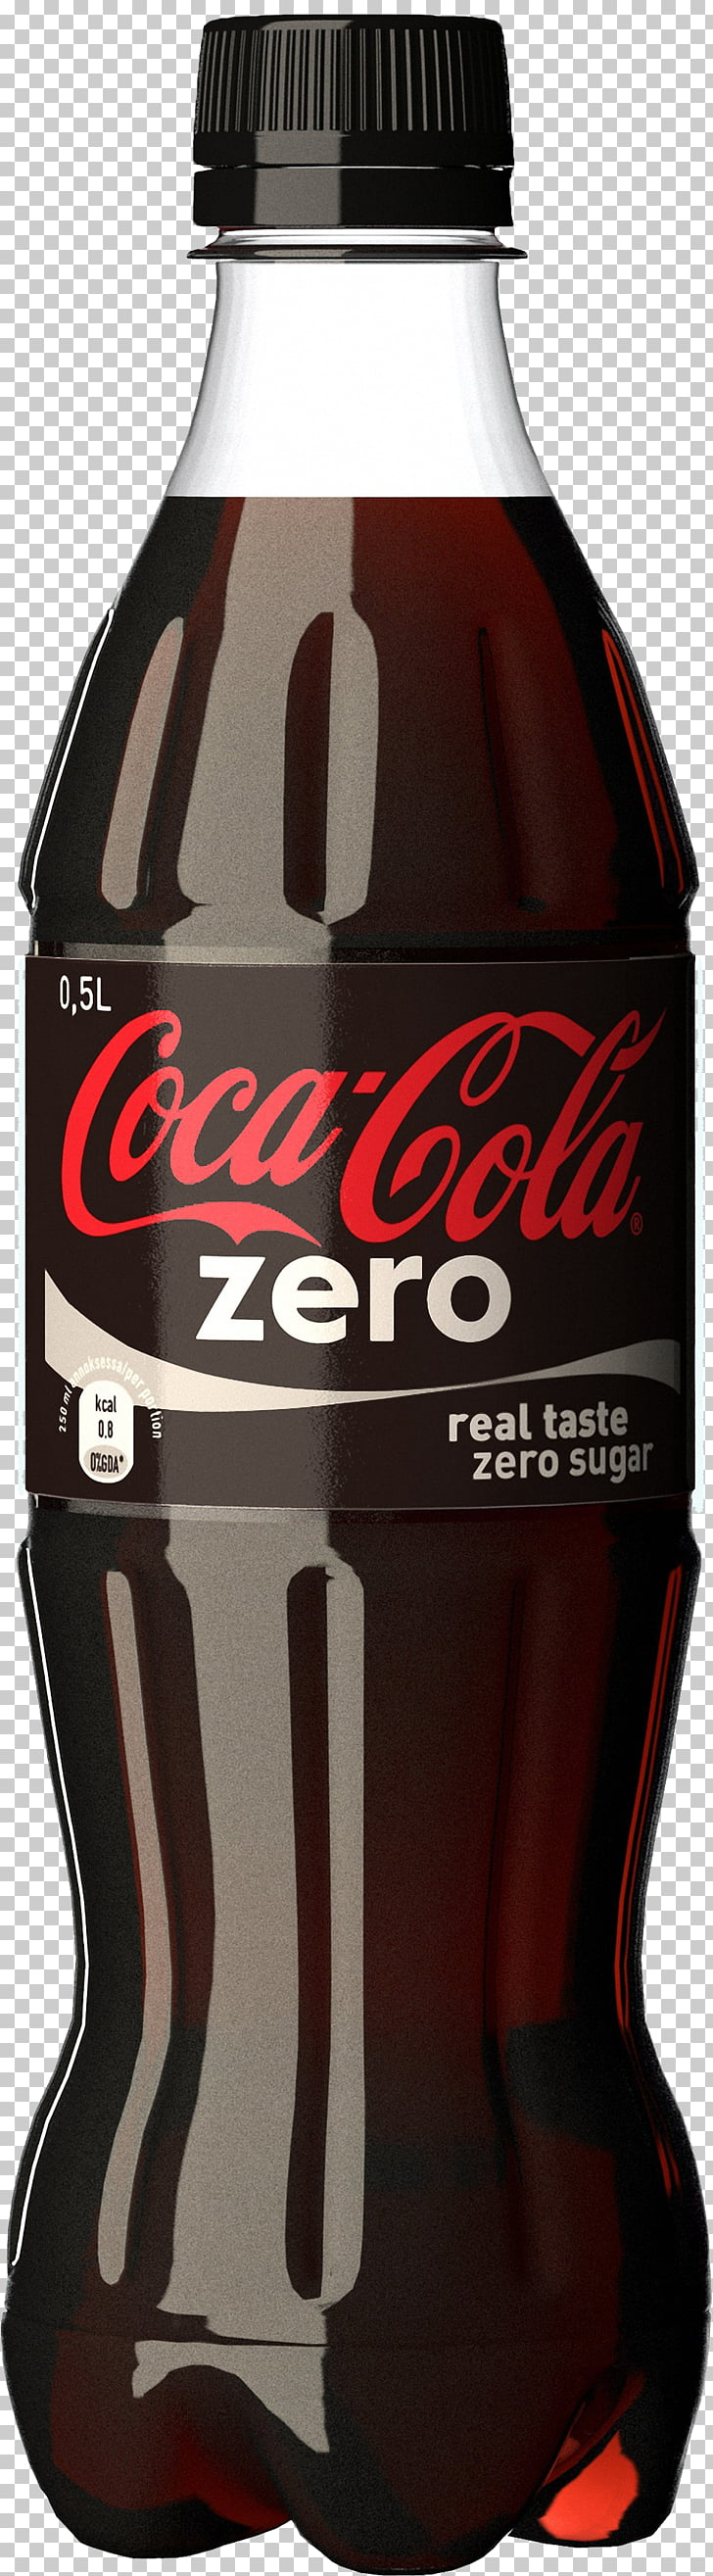 158 cocacola Zero Sugar PNG cliparts for free download.